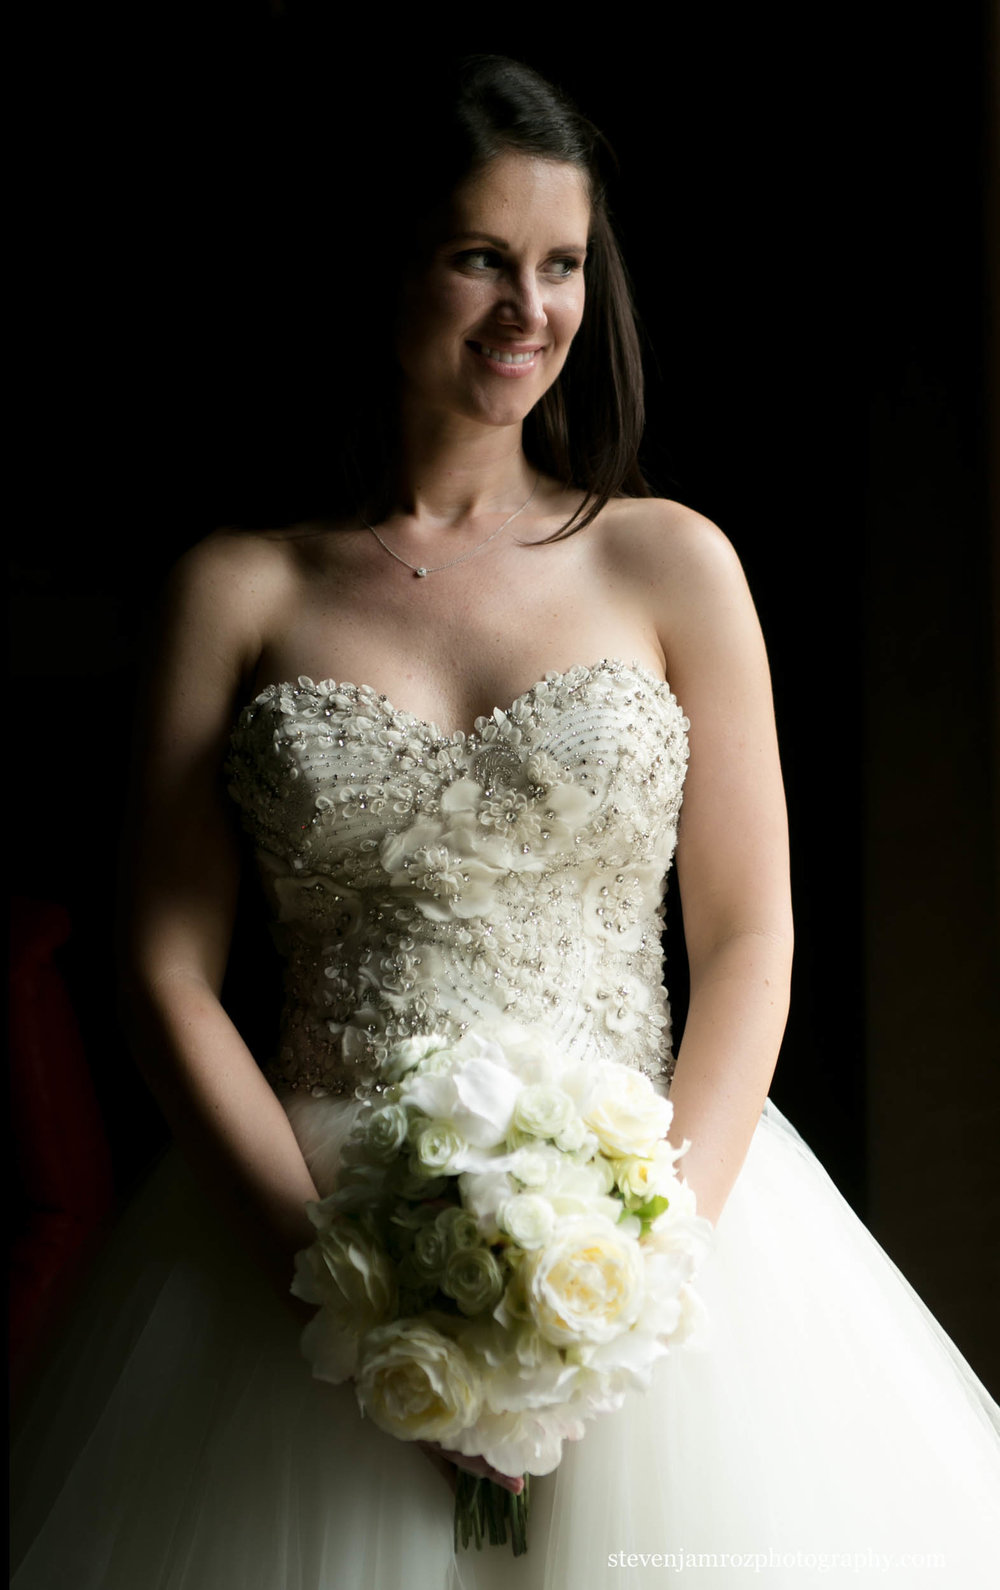 yellow-white-flowers-bride-portrait-wedding-steven-jamroz-0742.jpg